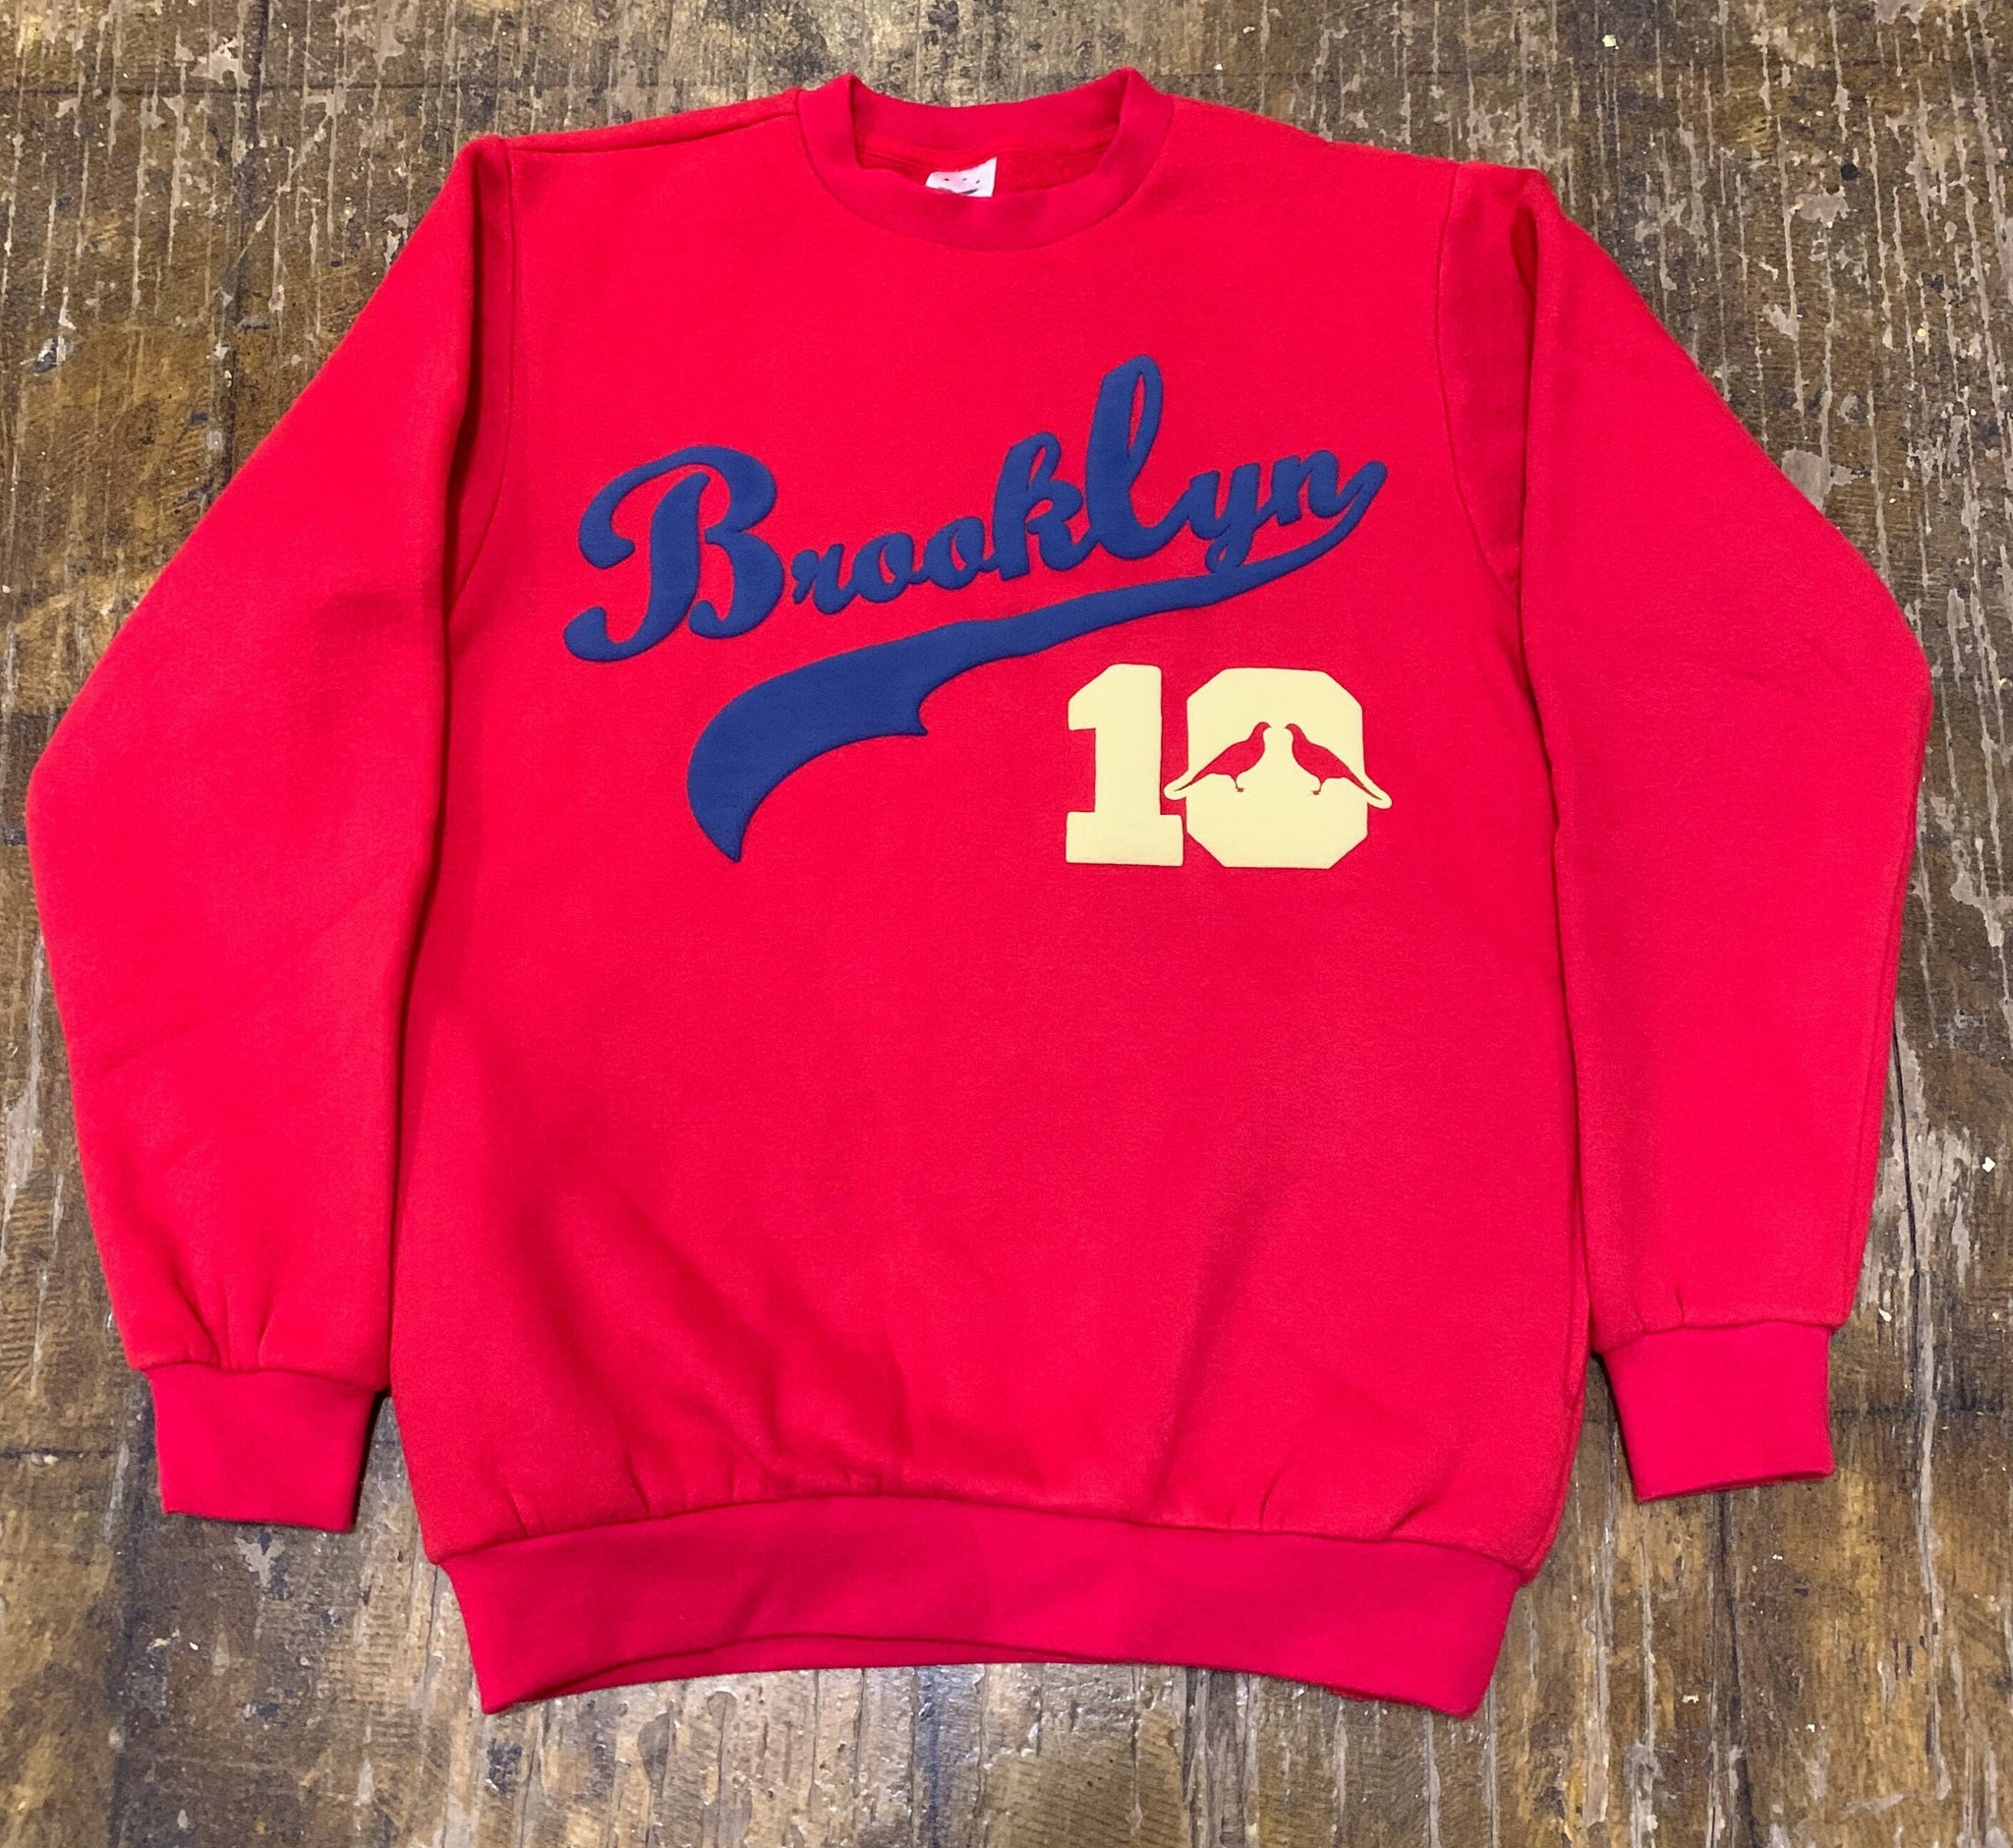 Brooklyn Sweatshirt #10 (Red)